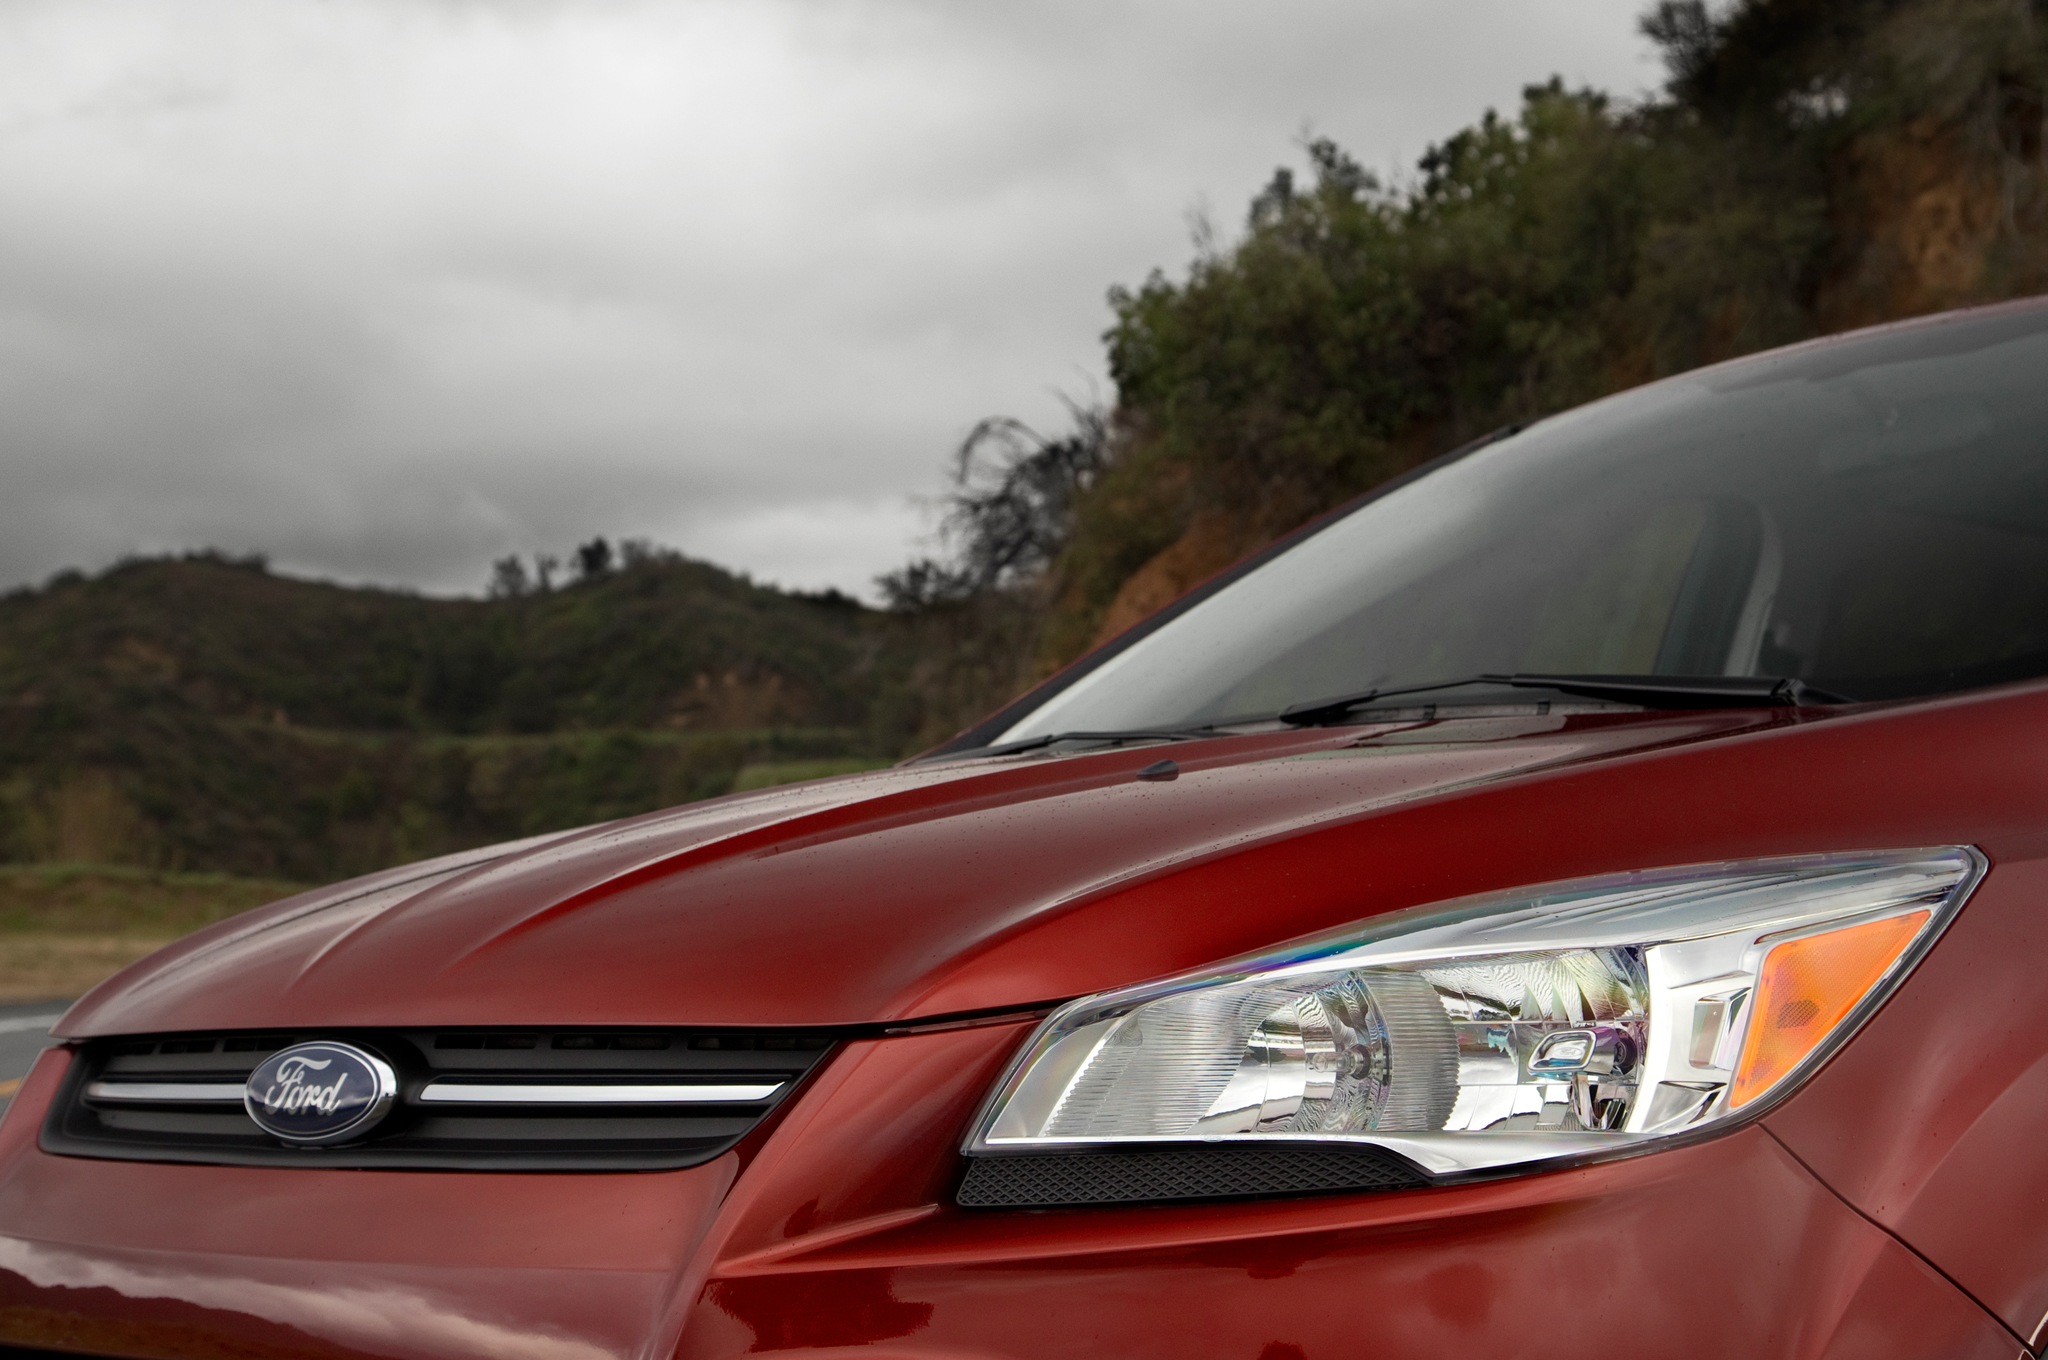 Ford Announces $989 Million Net Income for First Quarter